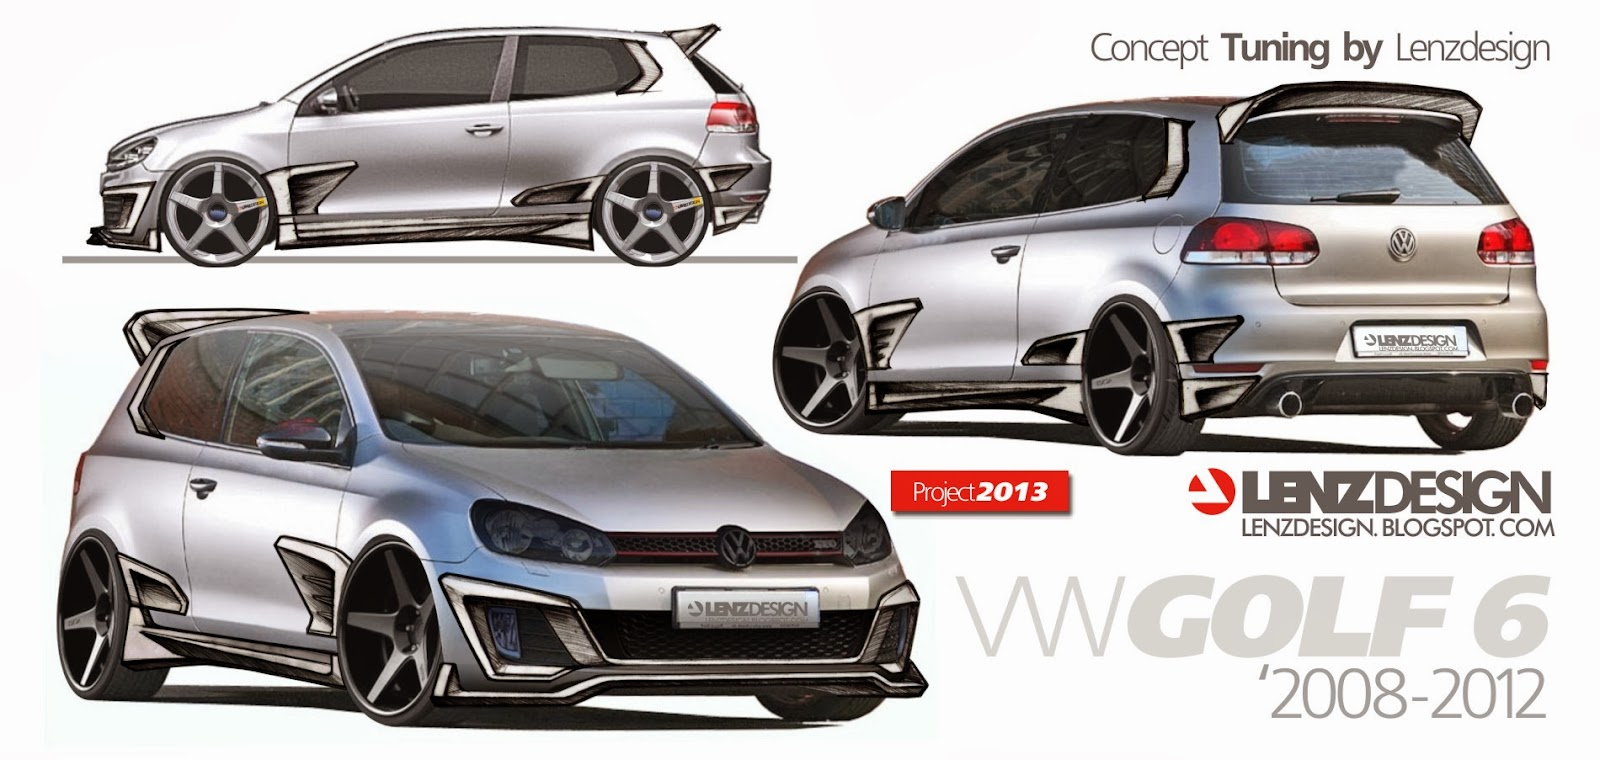 vw golf 6 tuning israel lenzdesign performance body kit. Black Bedroom Furniture Sets. Home Design Ideas